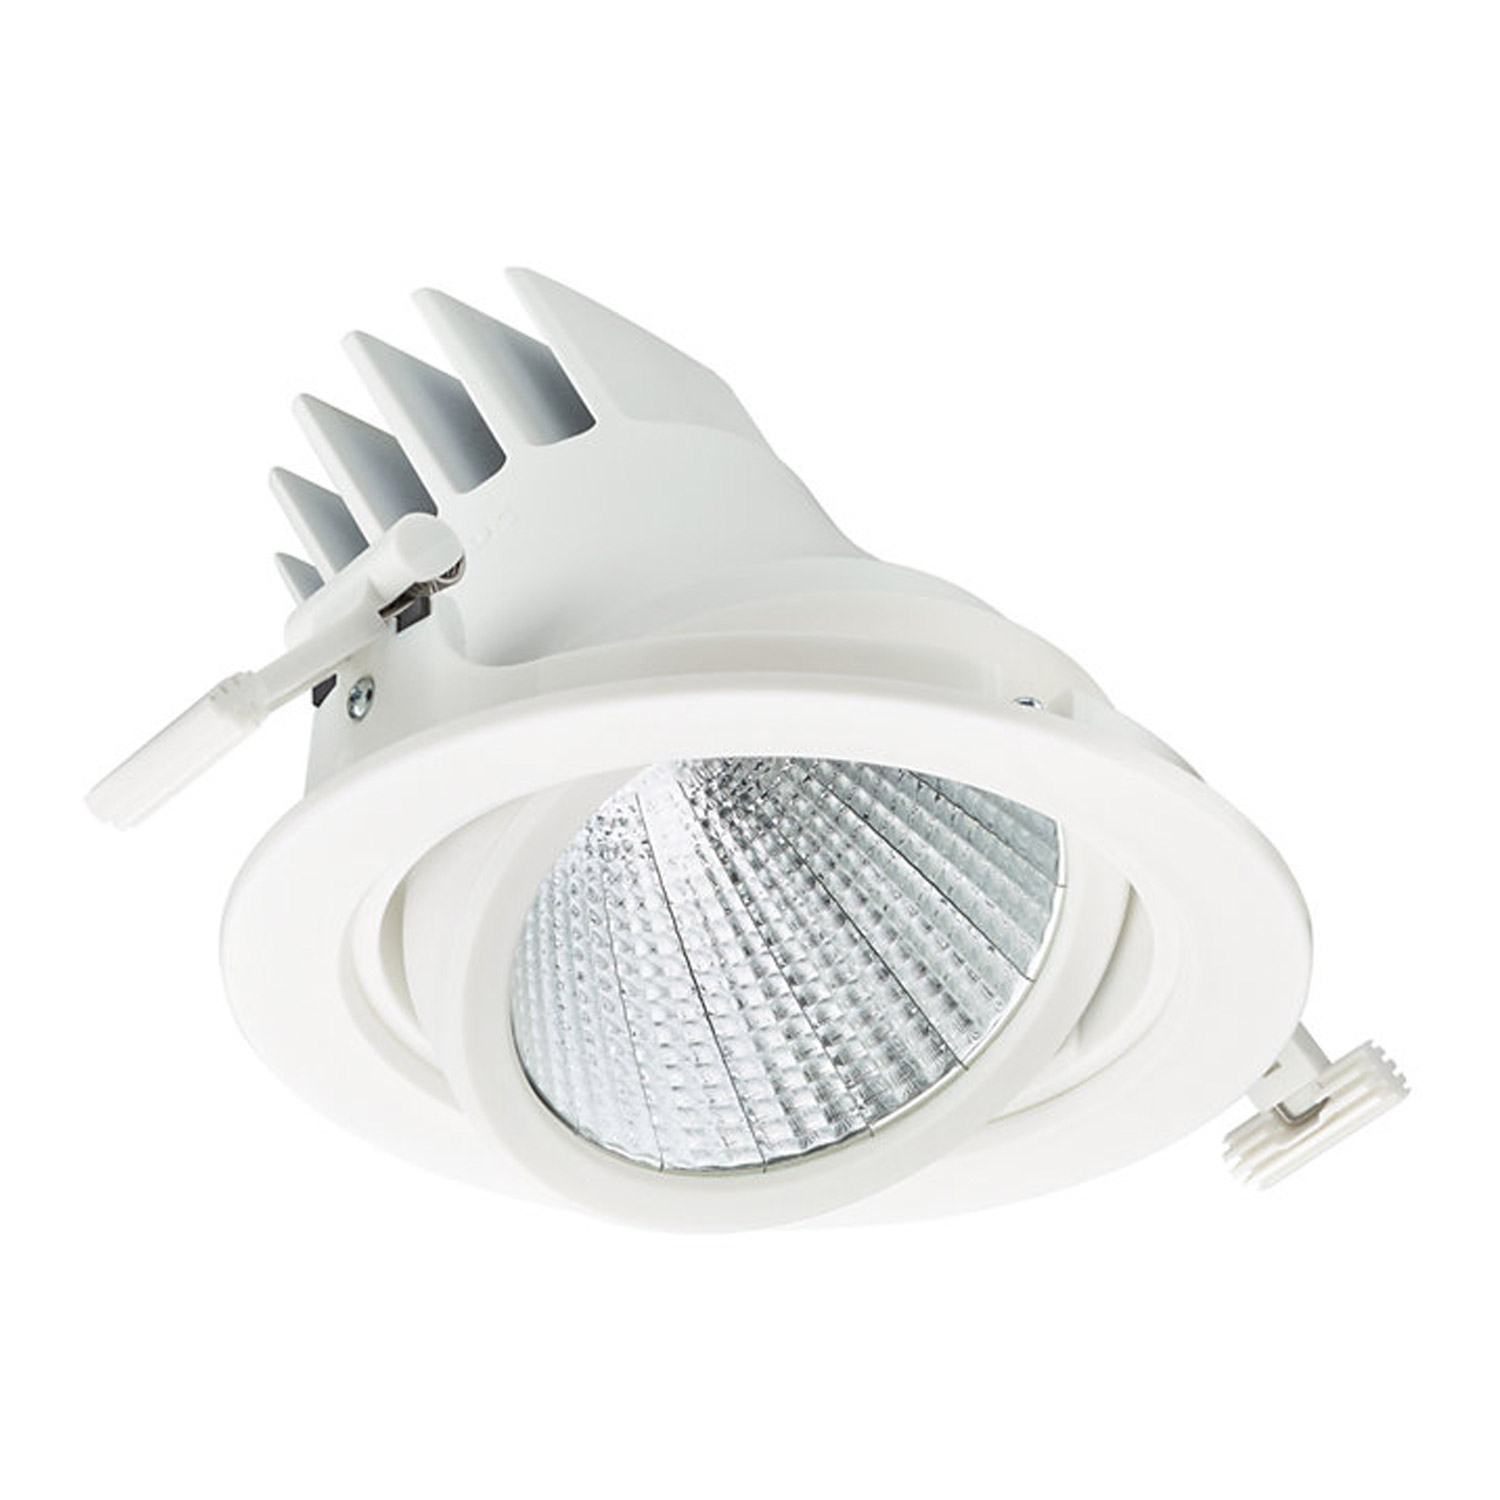 Philips LuxSpace Accent Performance LED Spot RS781B 29.5W 827 3750lm - Extra Warm White